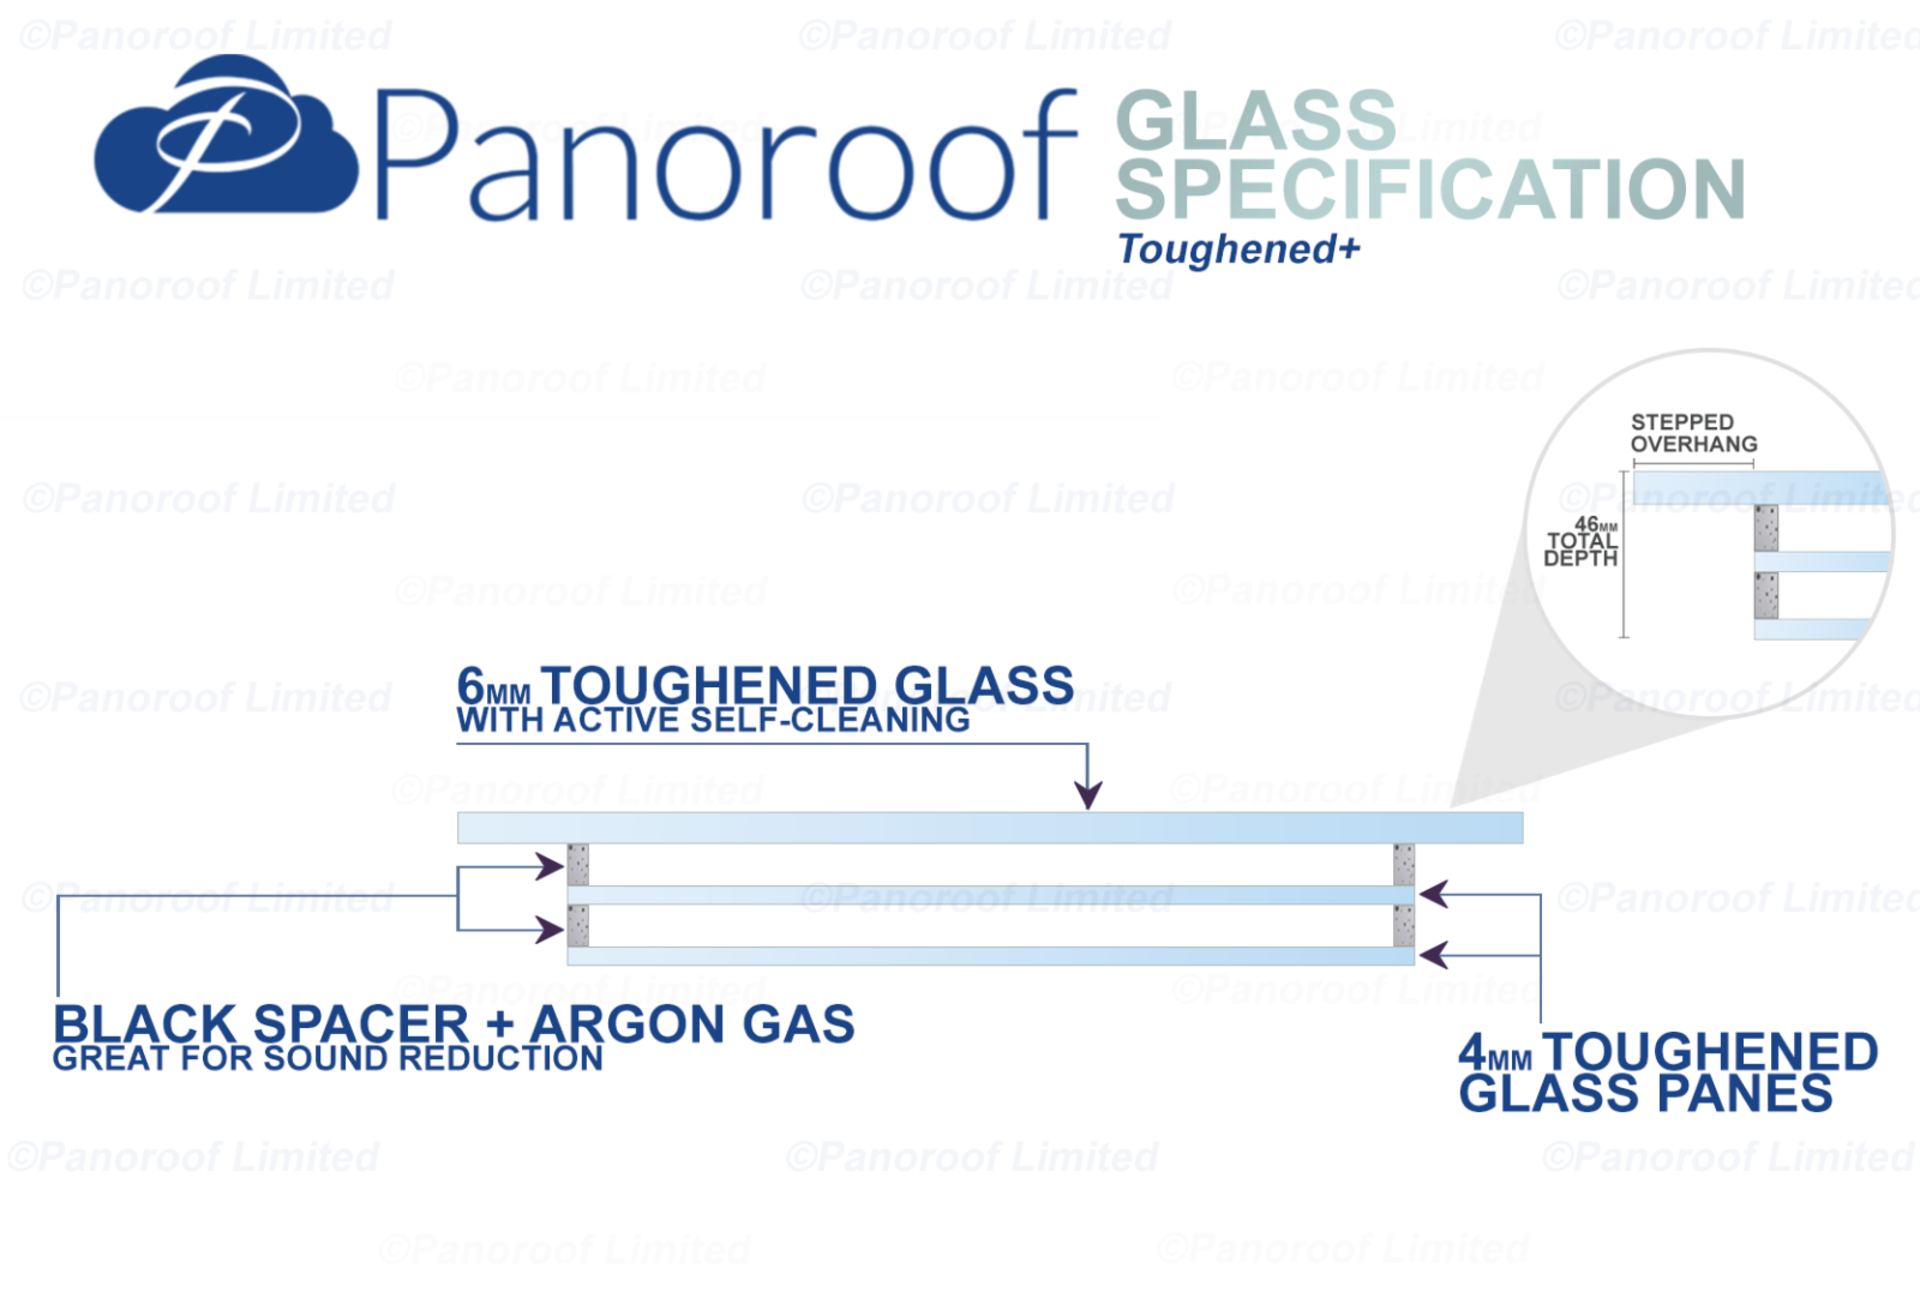 """""""""""""""Panoroof Triple Glazed Self Cleaning 1200x1200mm (inside Size Visable glass area) Seamless - Image 5 of 6"""